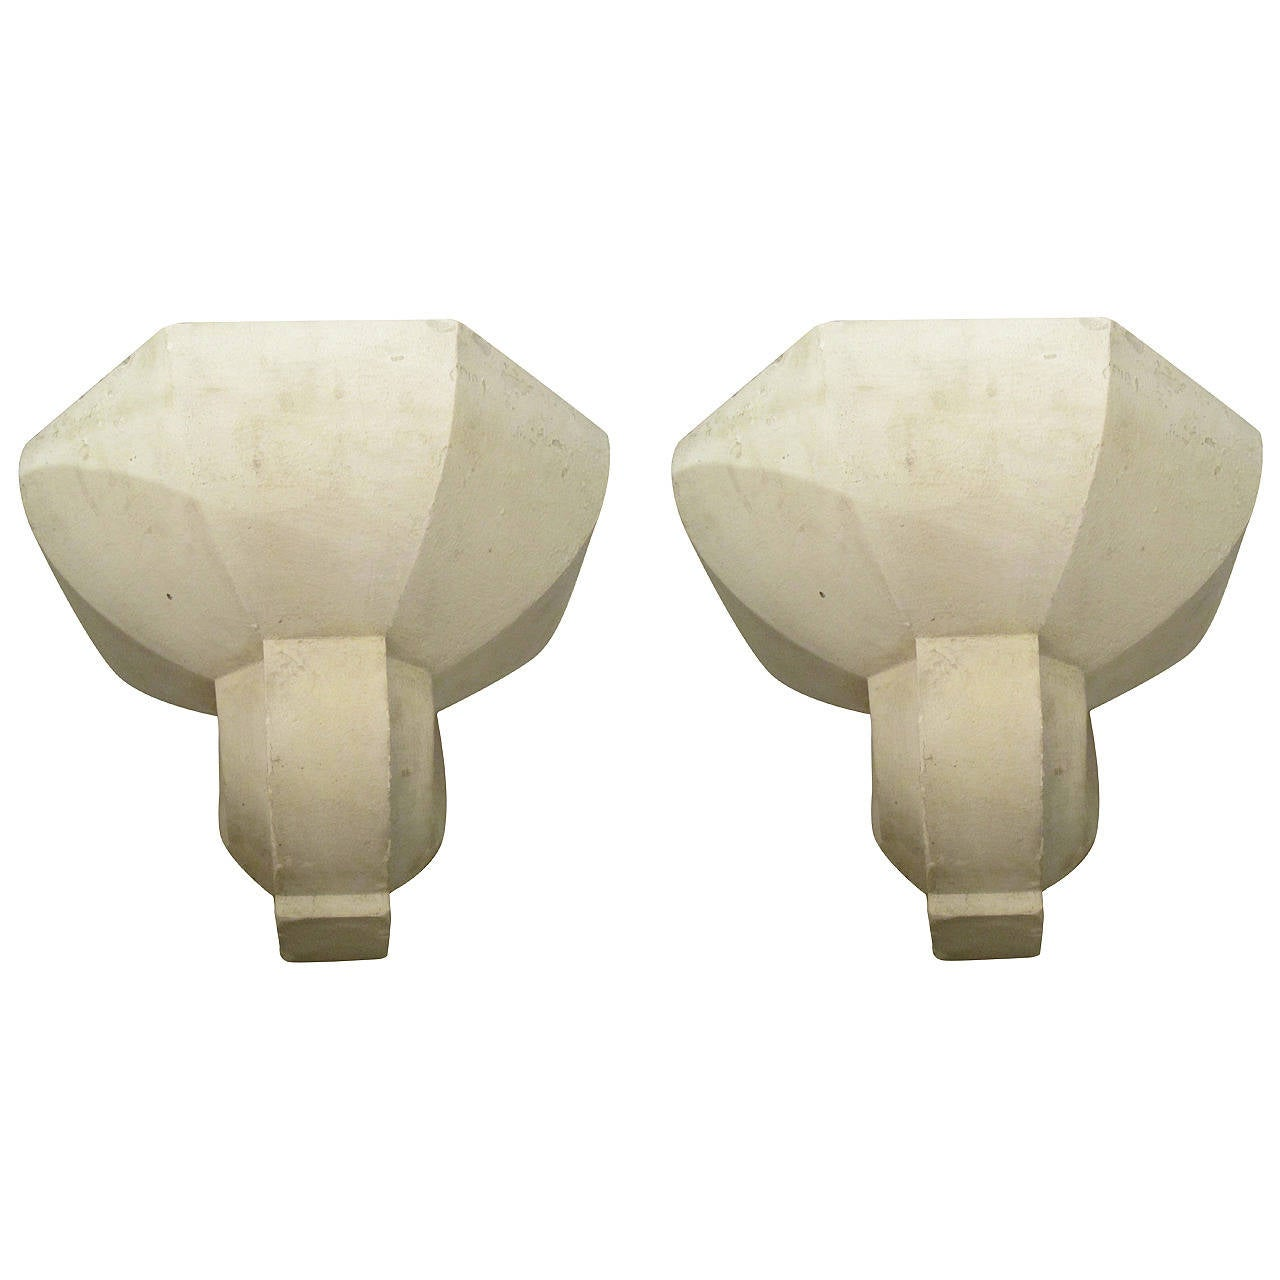 Pair of Custom Plaster Sconces in the French, 1940s Manner